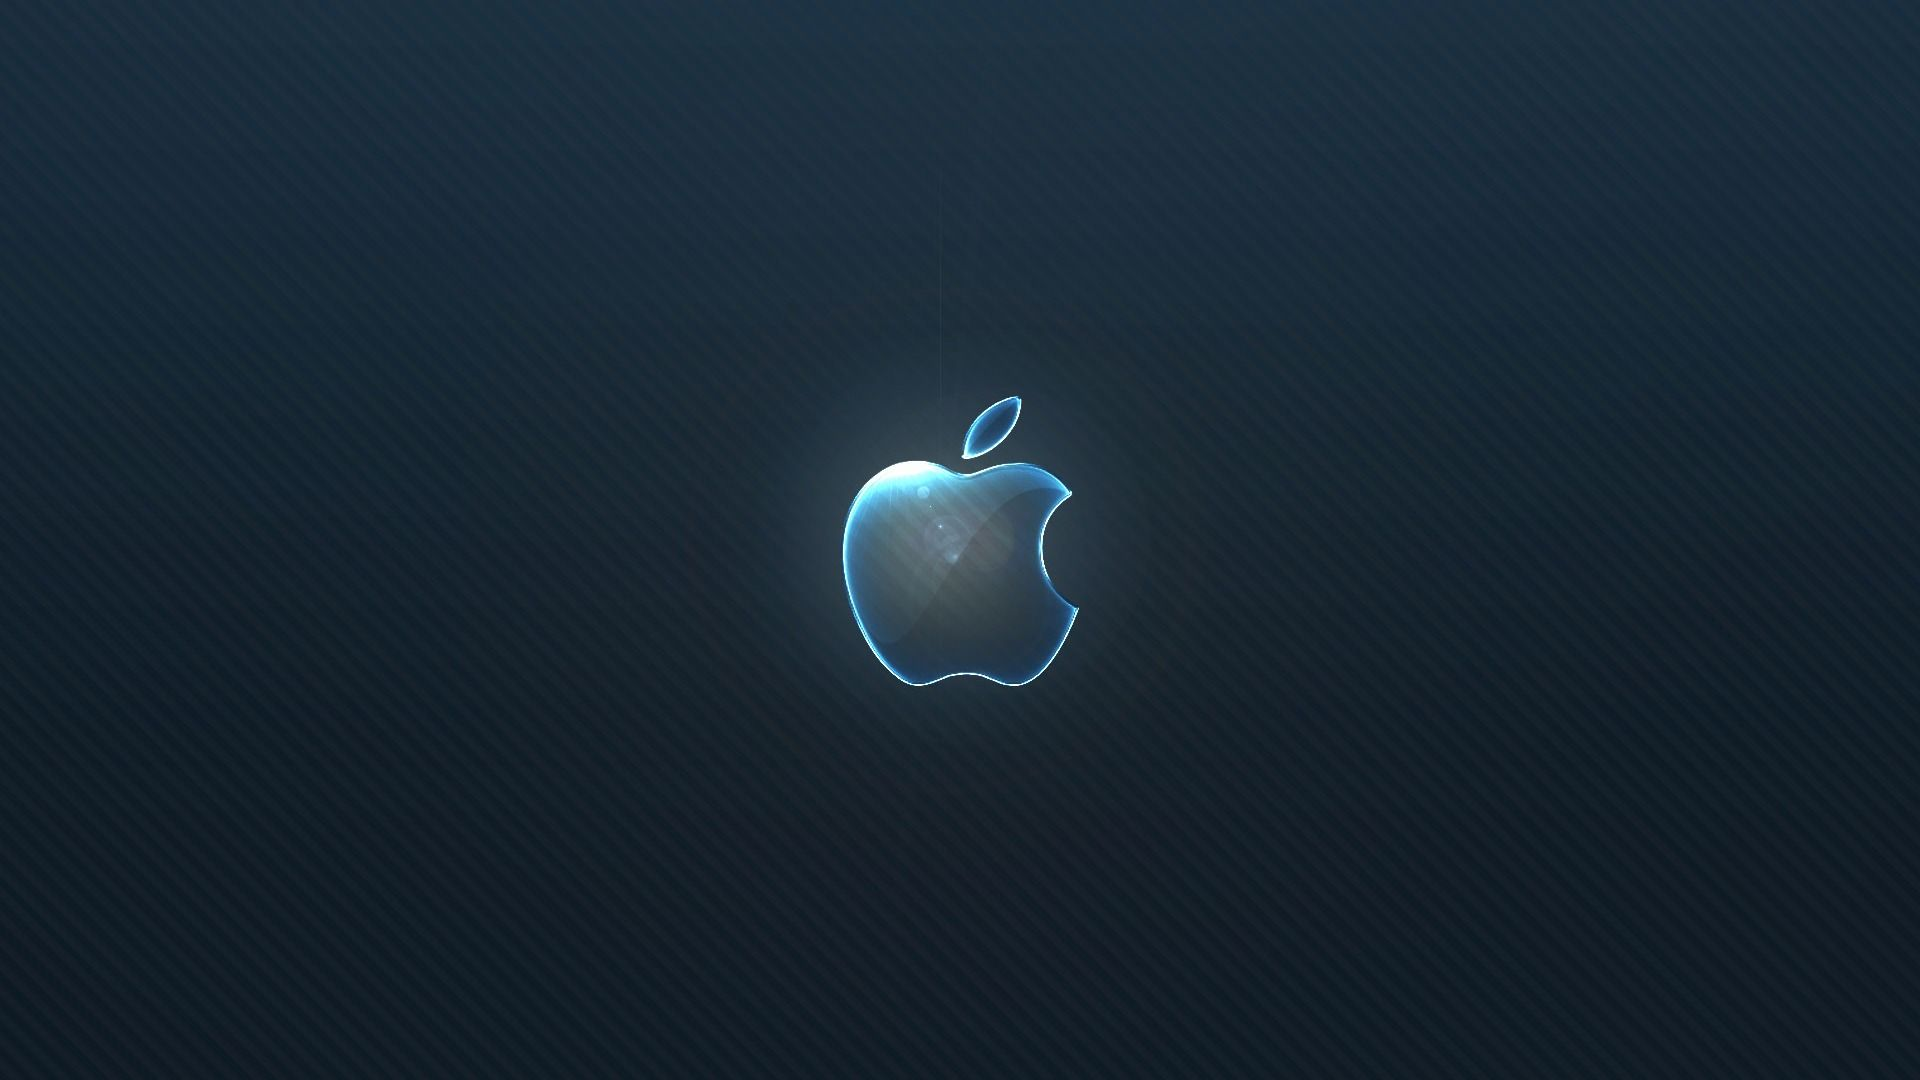 Wallpapers With Apple Logo For Iphone